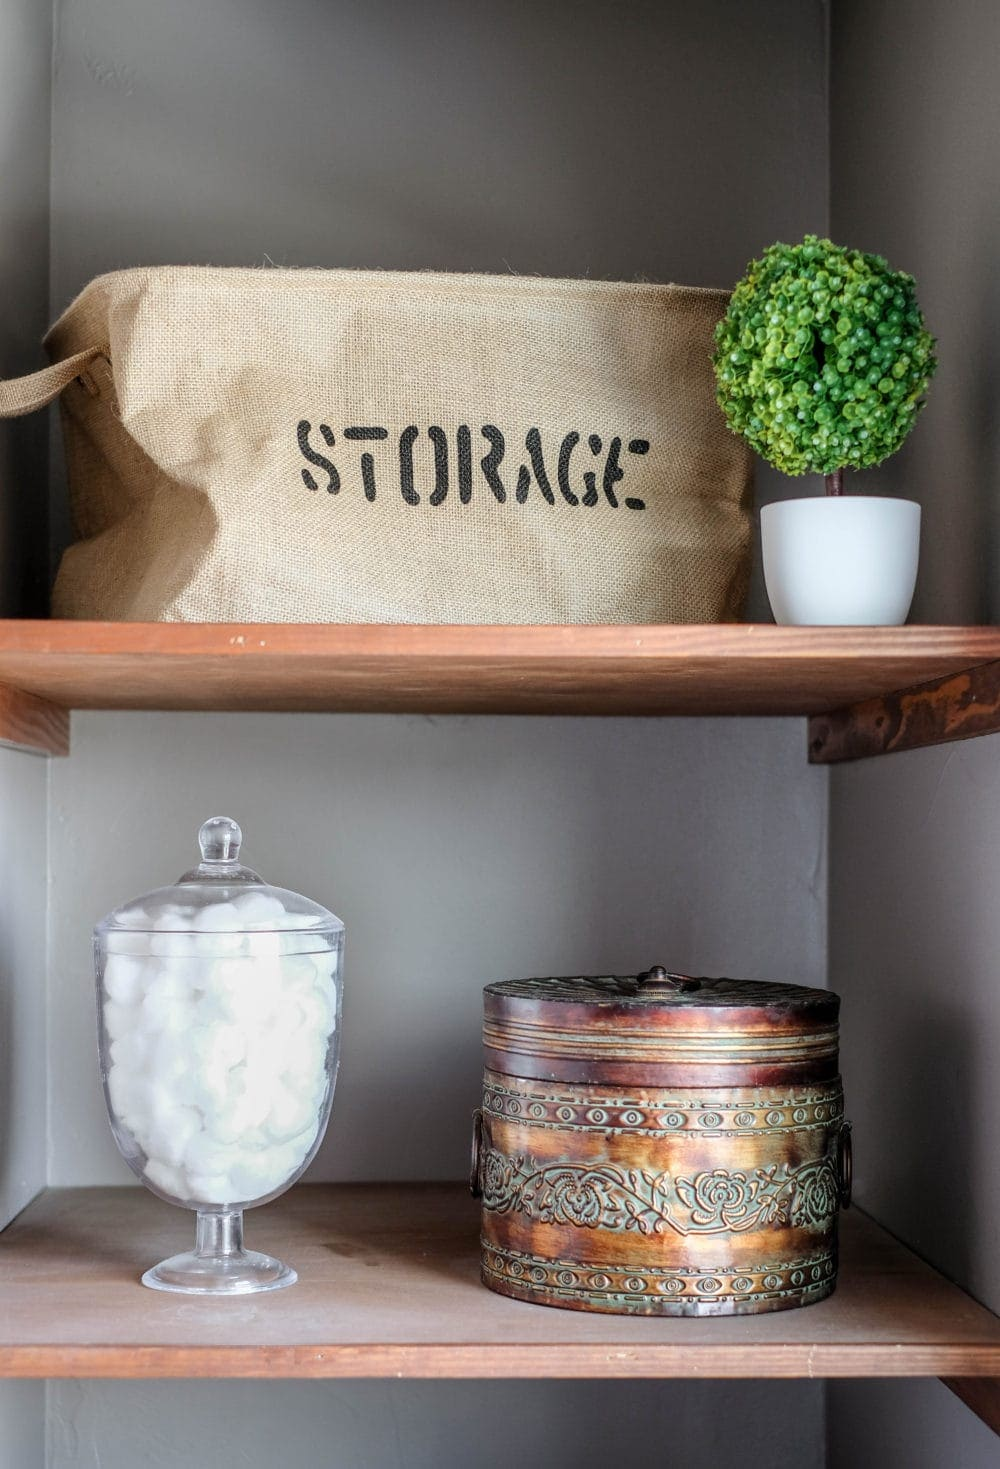 bathroom linens shelves styled with burlap, greenery, and a glass jar for cotton balls